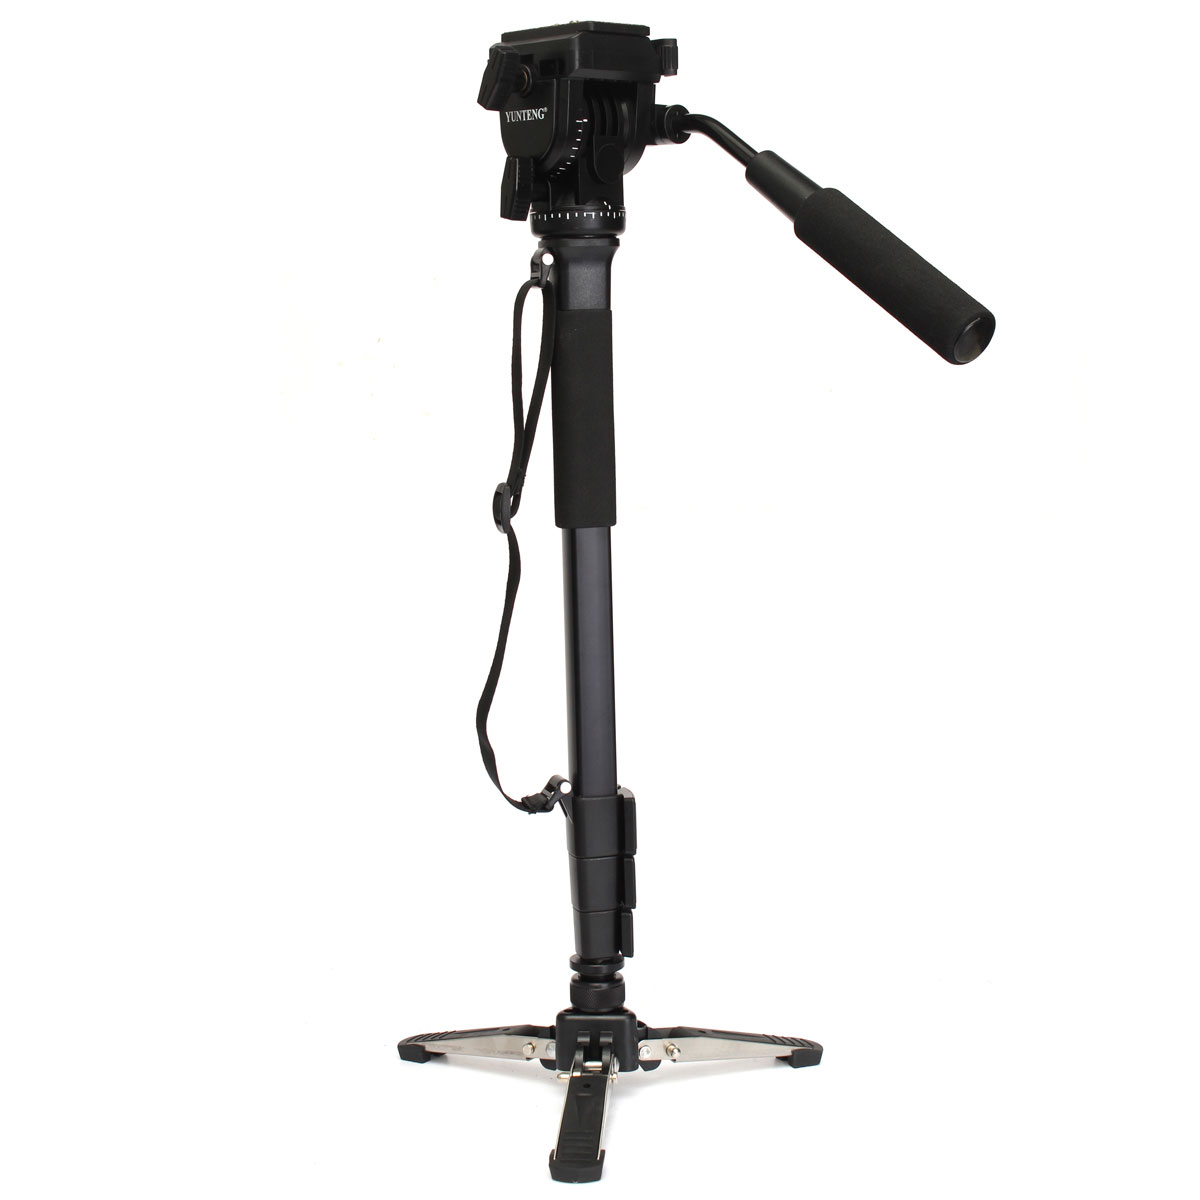 YUNTENG VCT-288 Camera Monopod+Fluid Pan Head+Unipod Holder Aluminum Alloy For DSLR Camera Loading Capacity 3kg 148cm Black ulanzi vct 288 58in photography tripod monopod unipod with fluid pan head quick release plate for iphone canon nikon dslr camera